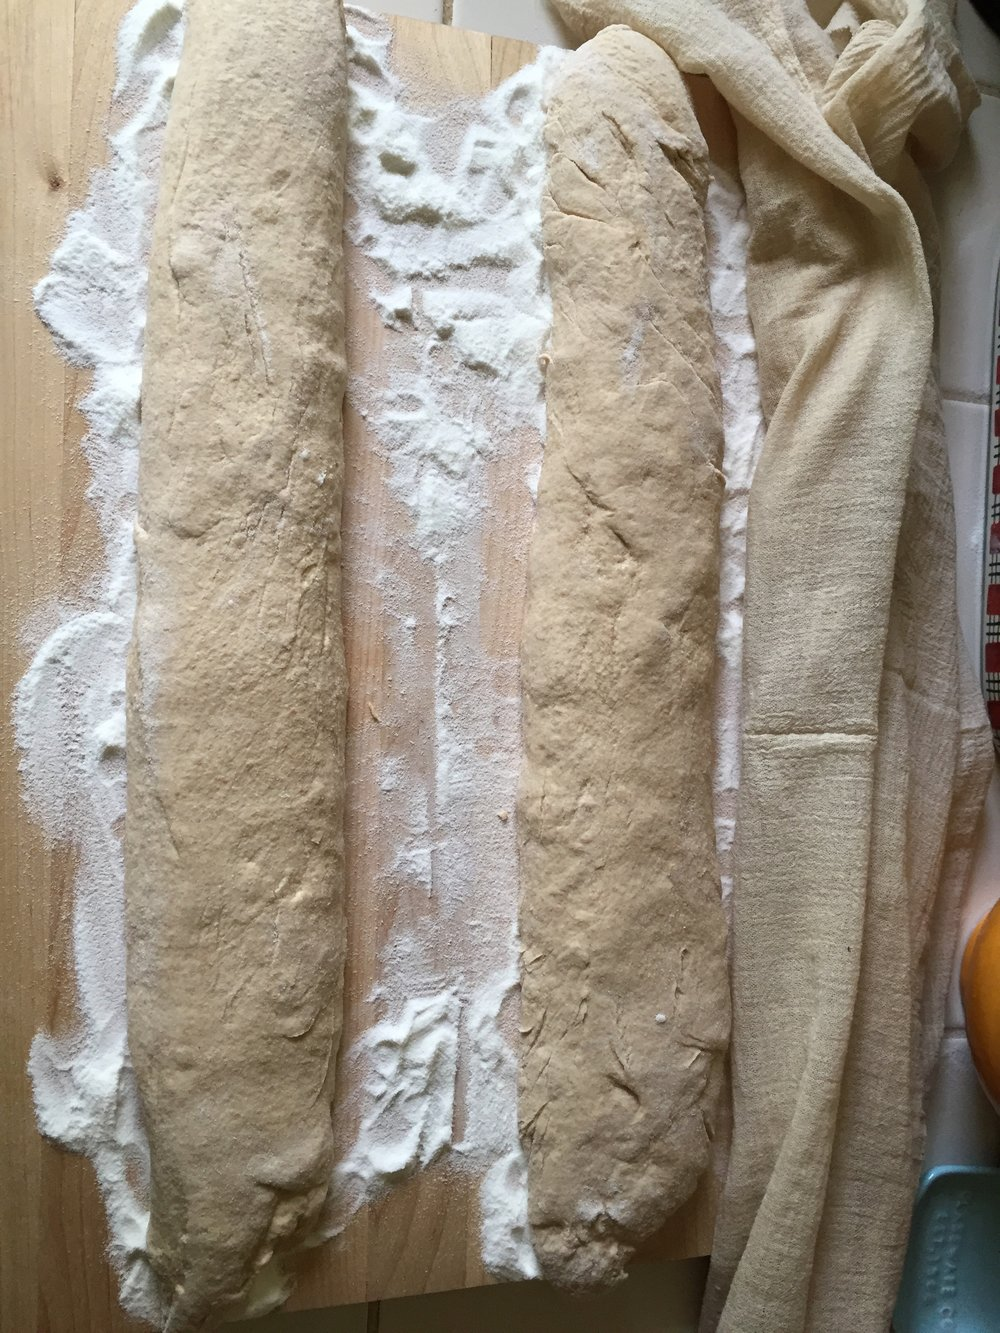 That's rice flour I'm using for the shaping and dusting, and a cheesecloth for covering them while they rest.